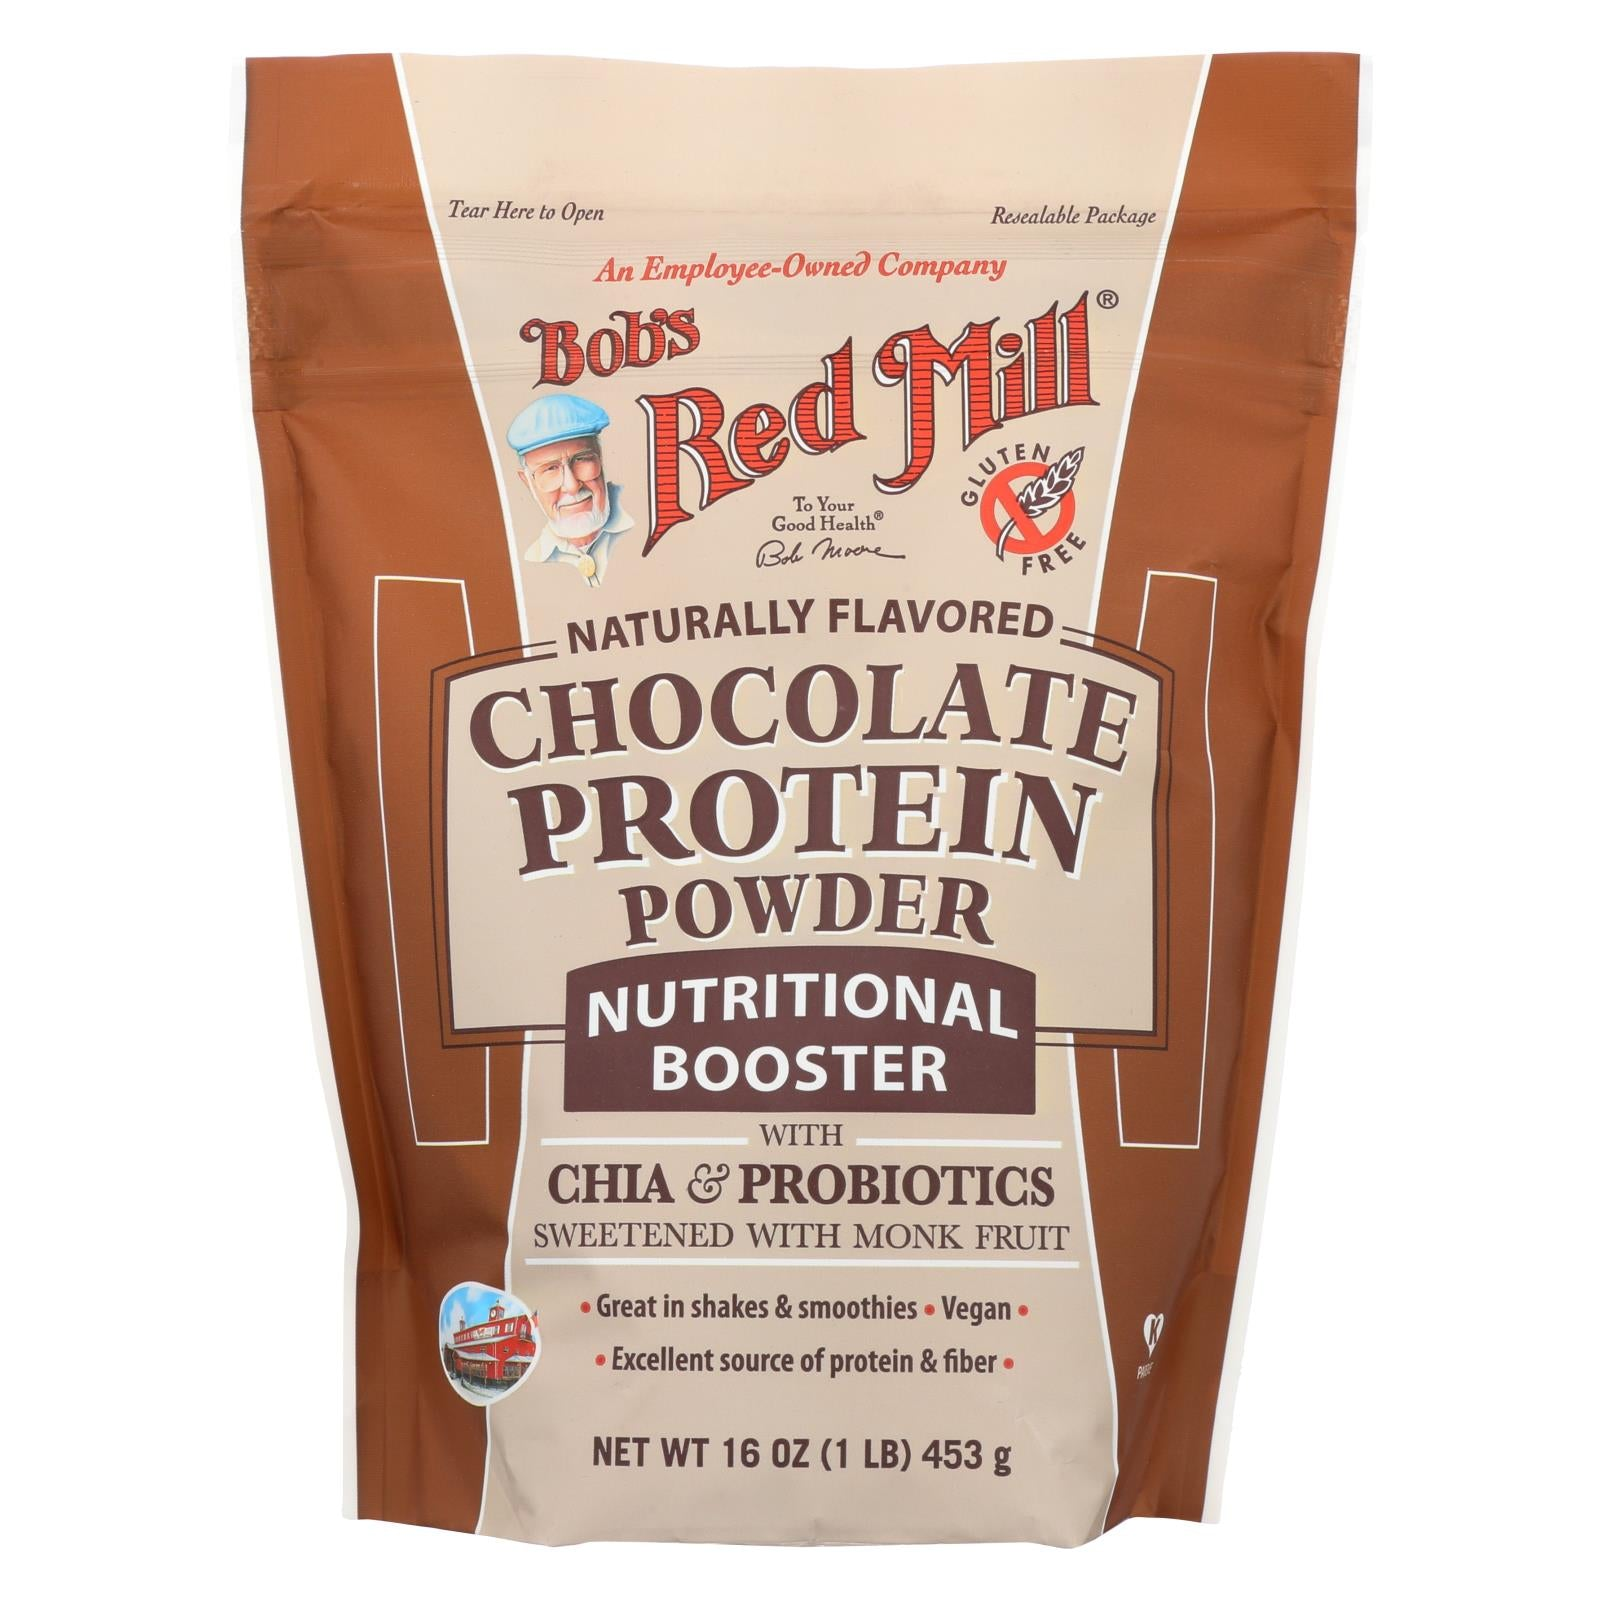 Bob's Red Mill Chocolate Protein Powder Nutritional Booster - 16 Oz - Case Of 4 HG1808799